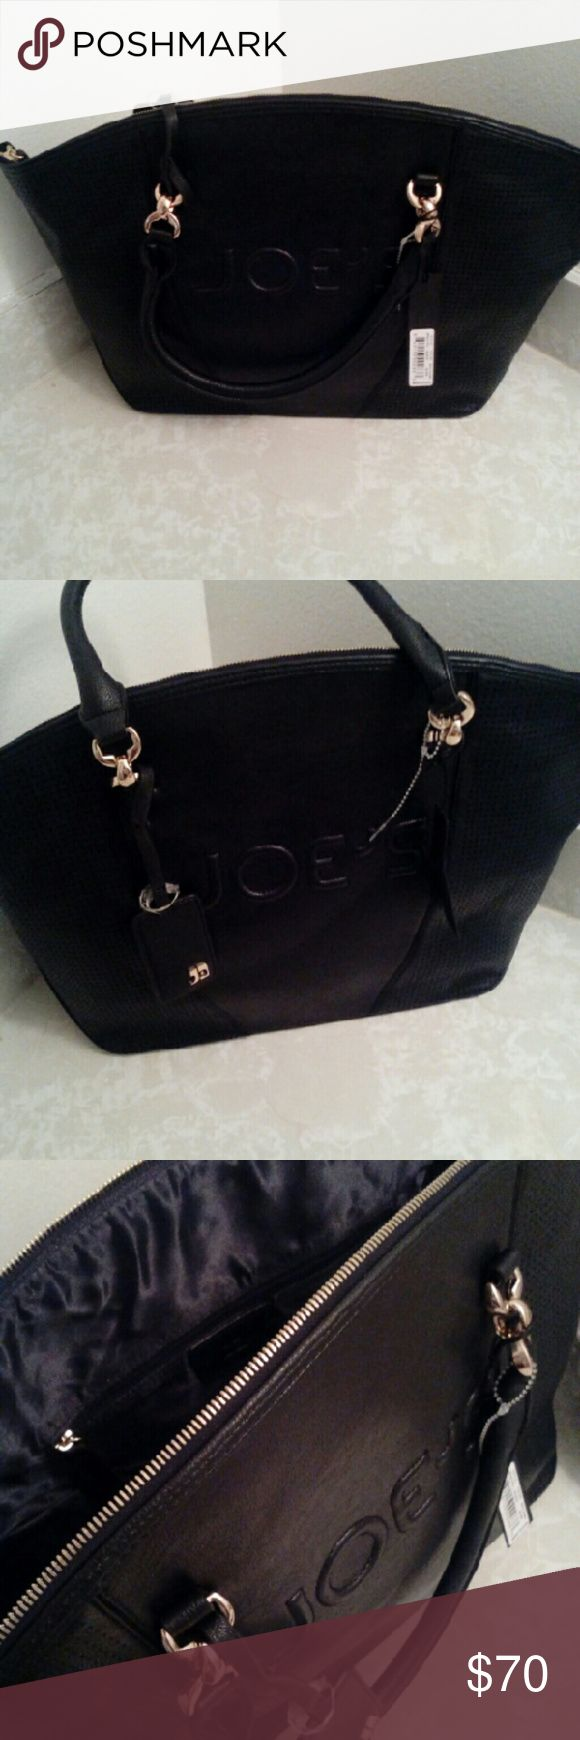 Joe's Oversized handbag!!! Host Pick Very Sexy joes authentic oversized handbags gold details! Org Price $125 please hit the offer button! Please share and feel free to comment and ask question New W/Tags! Joe's Jeans Bags Satchels